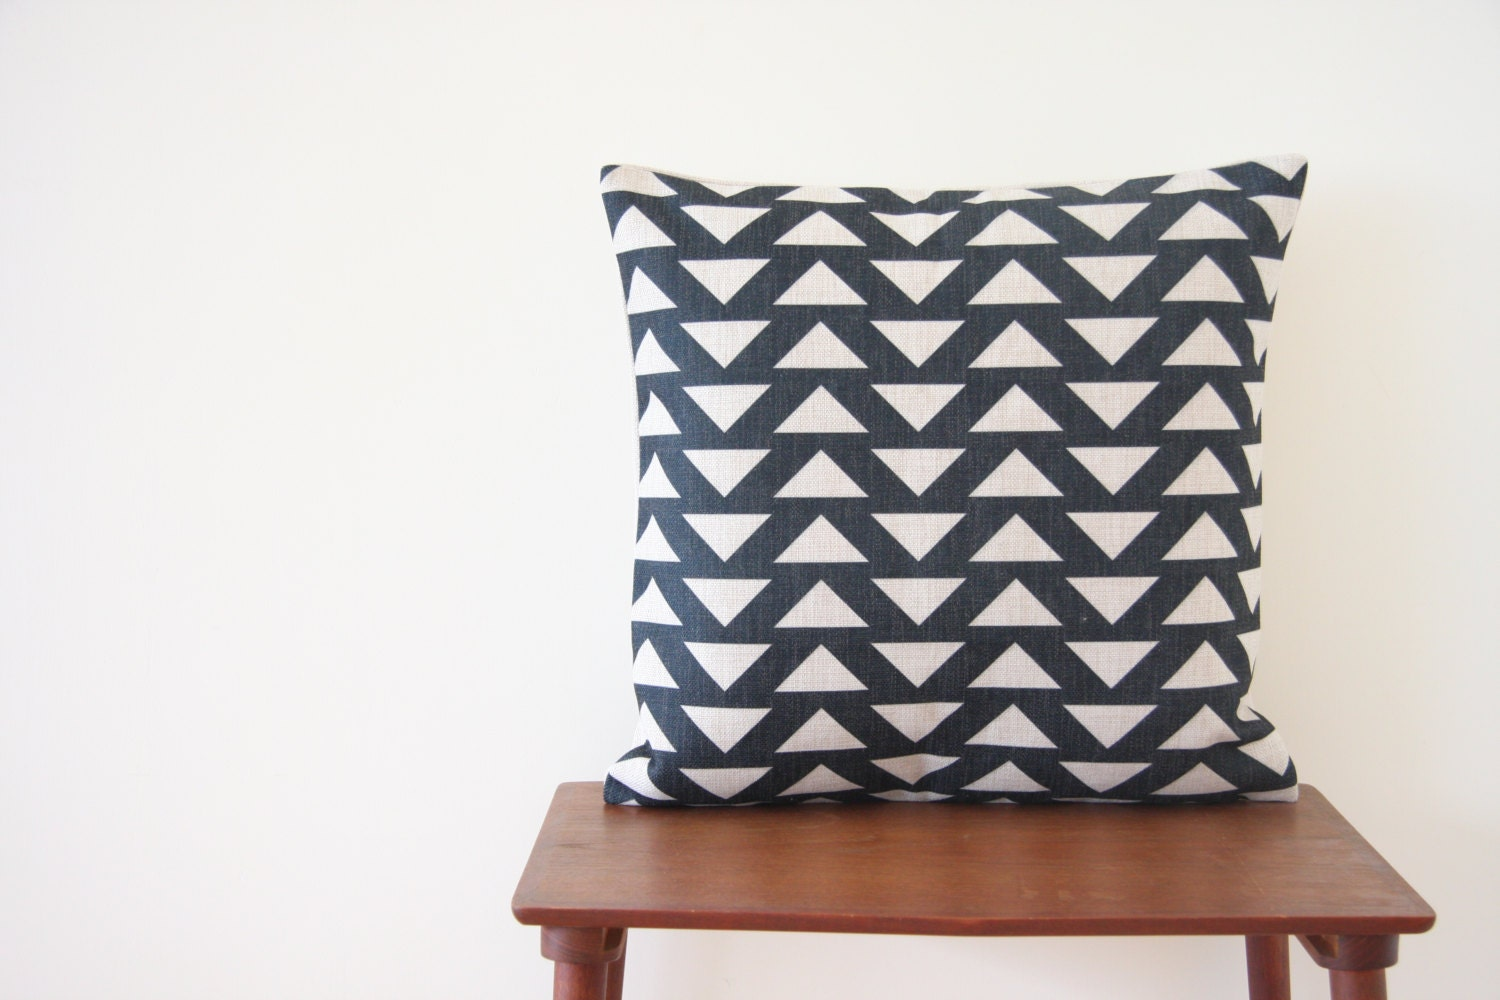 Decorative Pillow Cover Patterns : 18x18 Decorative Pillow Cover Geometric Pattern by BeadandReel